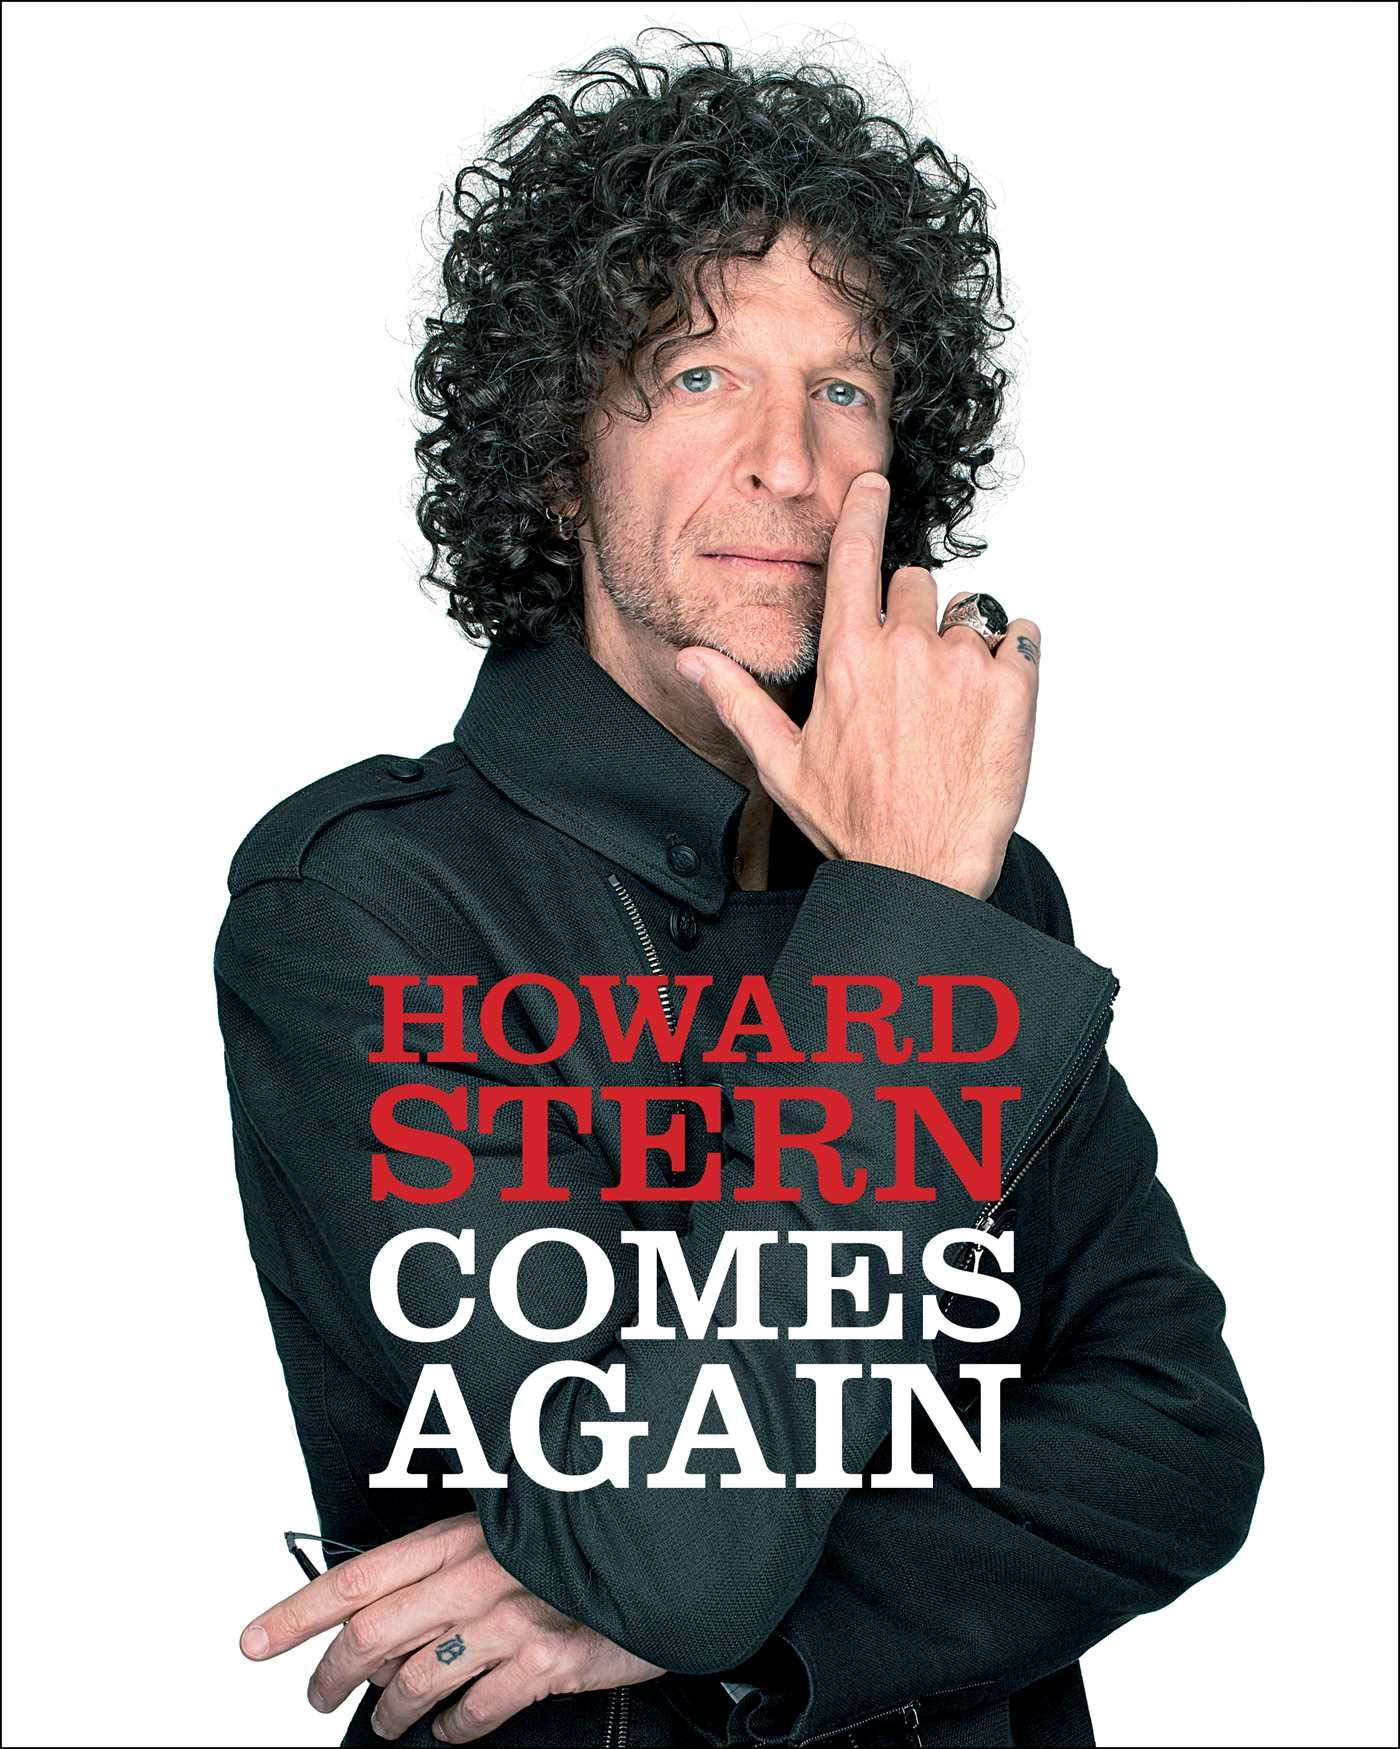 Howard Stern Comes Again by Simon & Schuster